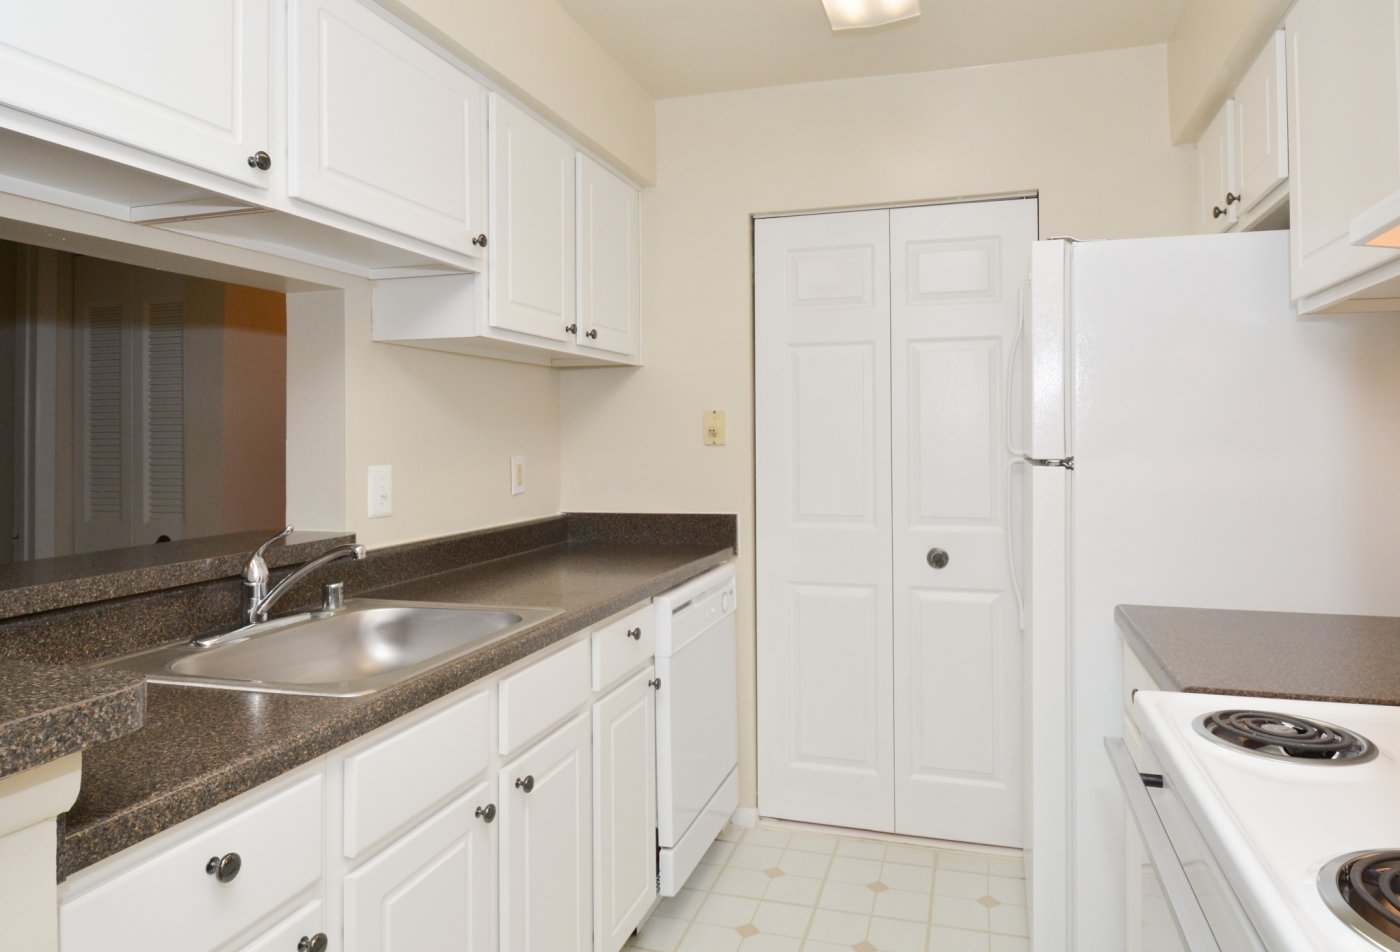 State-of-the-Art Kitchen | Laurel MD Apartment Homes | Spring House Apartments